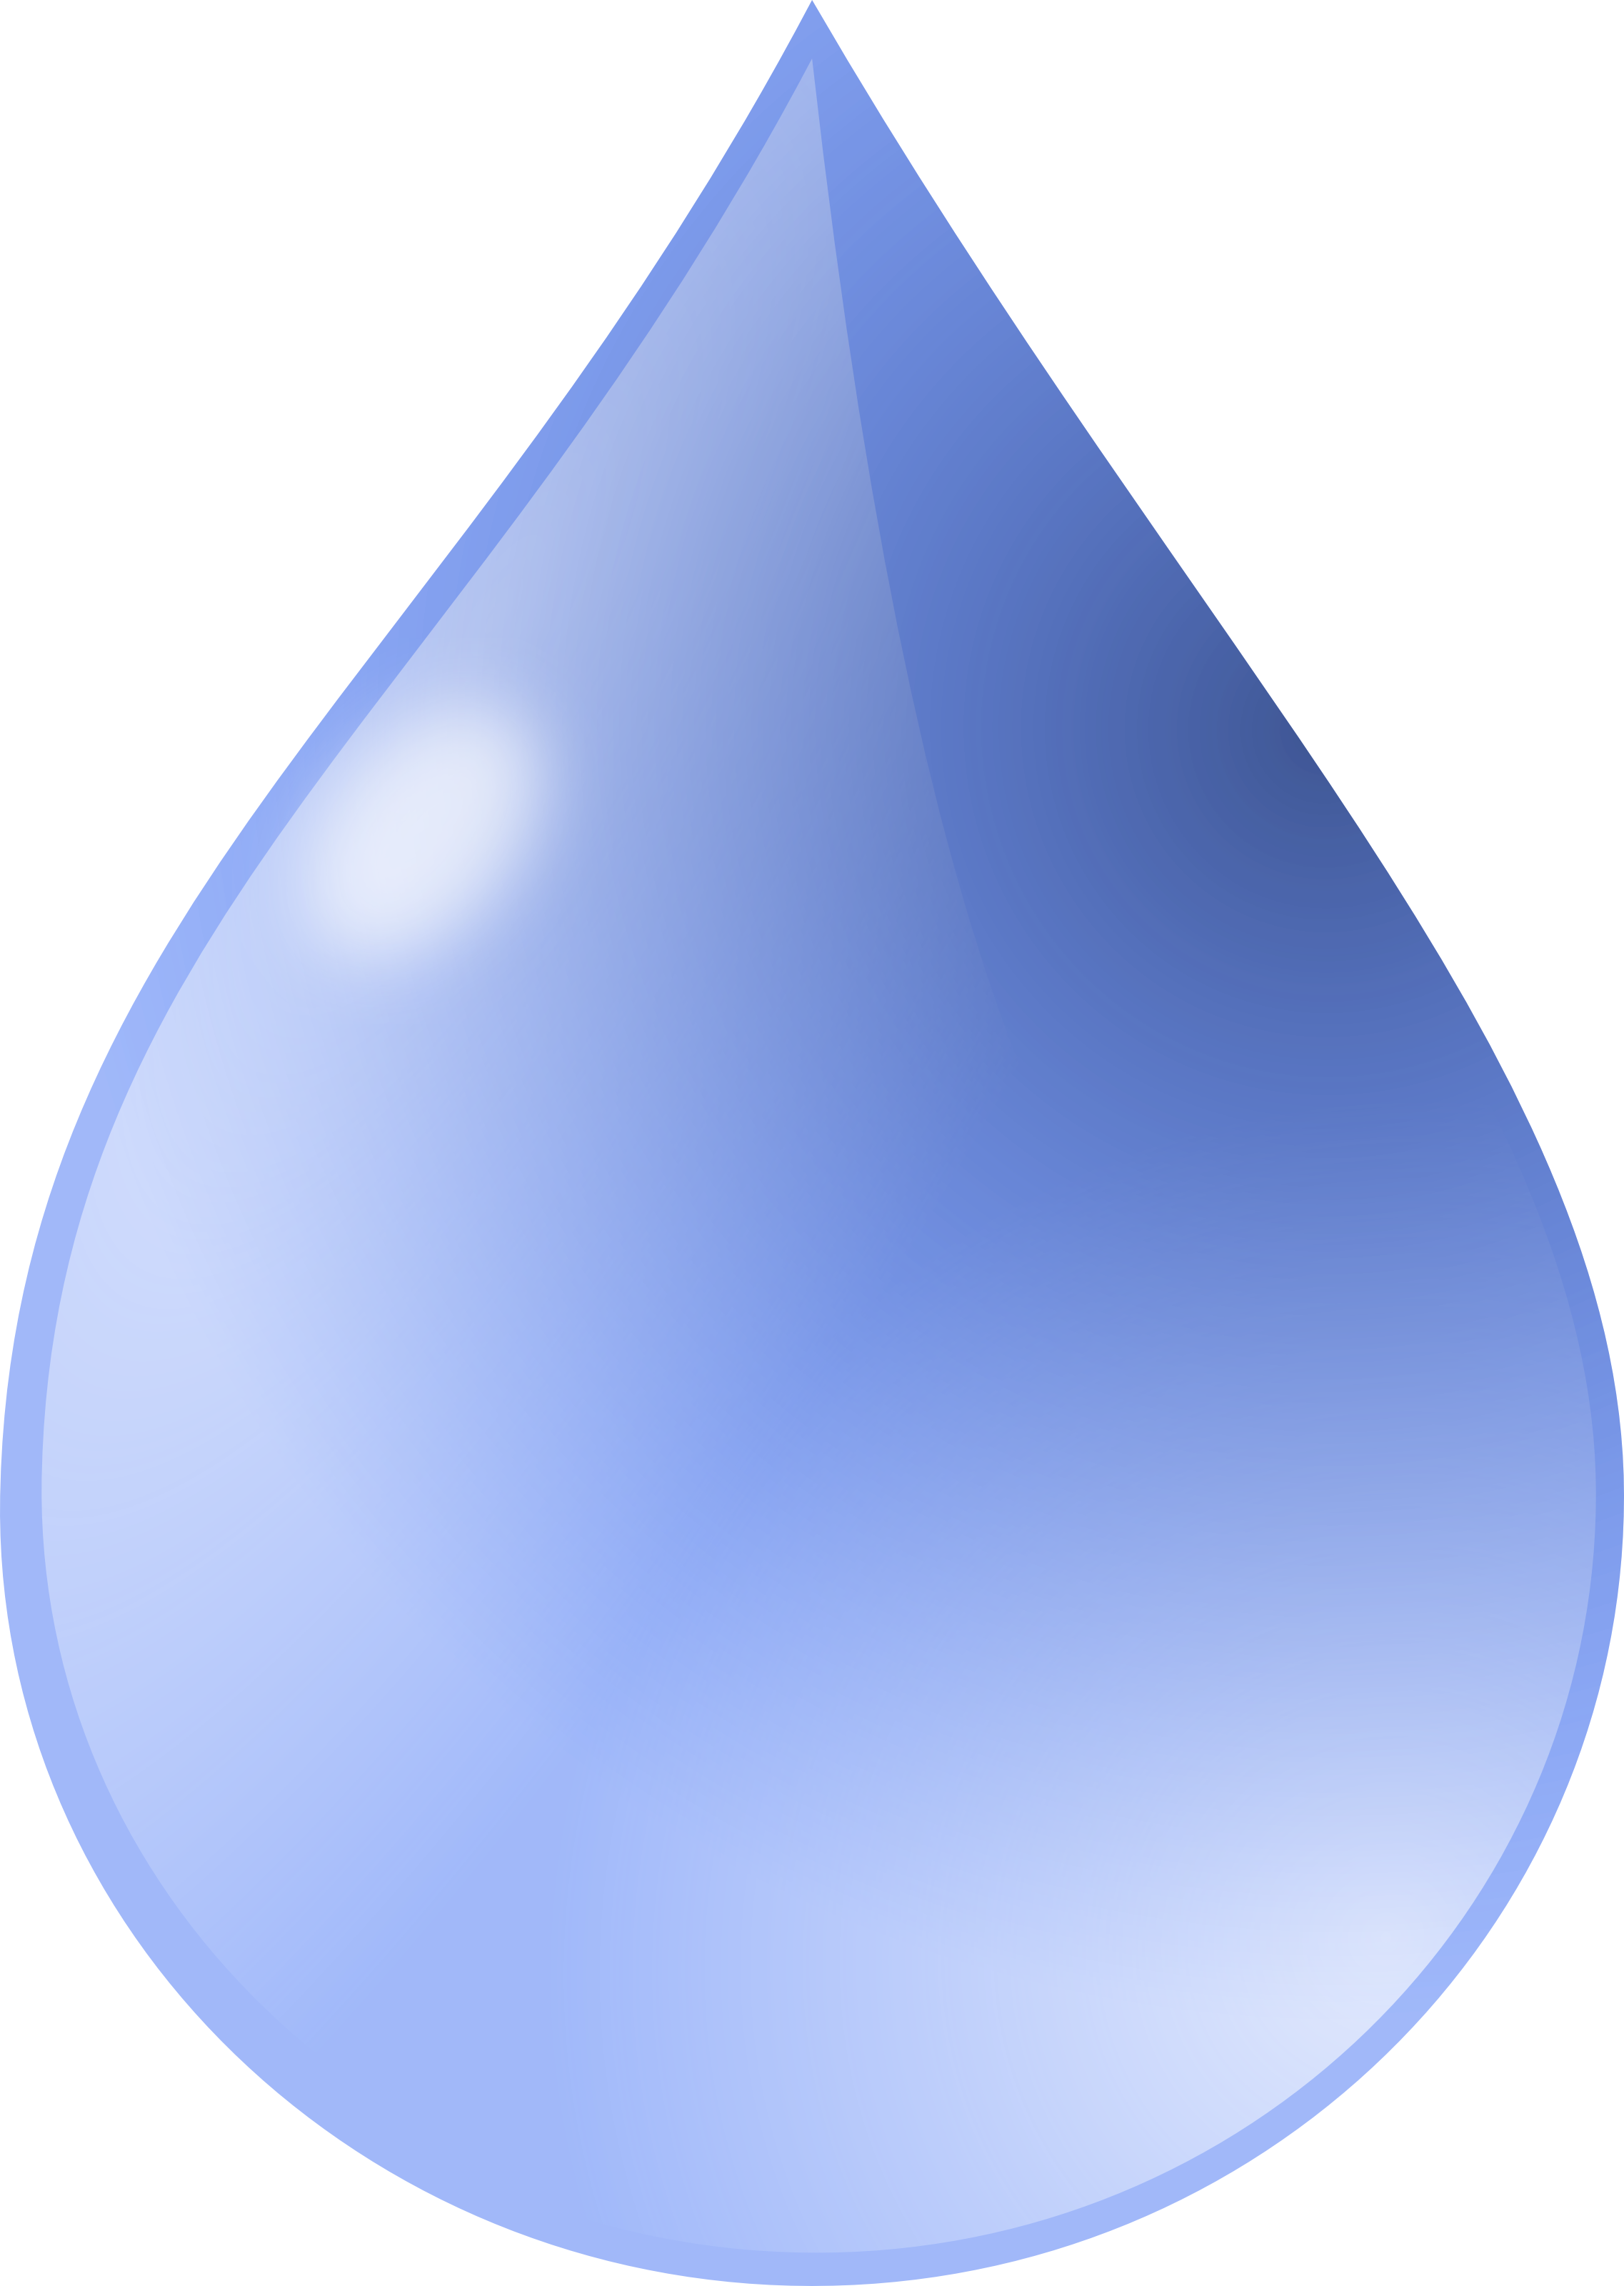 Waterdrop clipart water splash #3